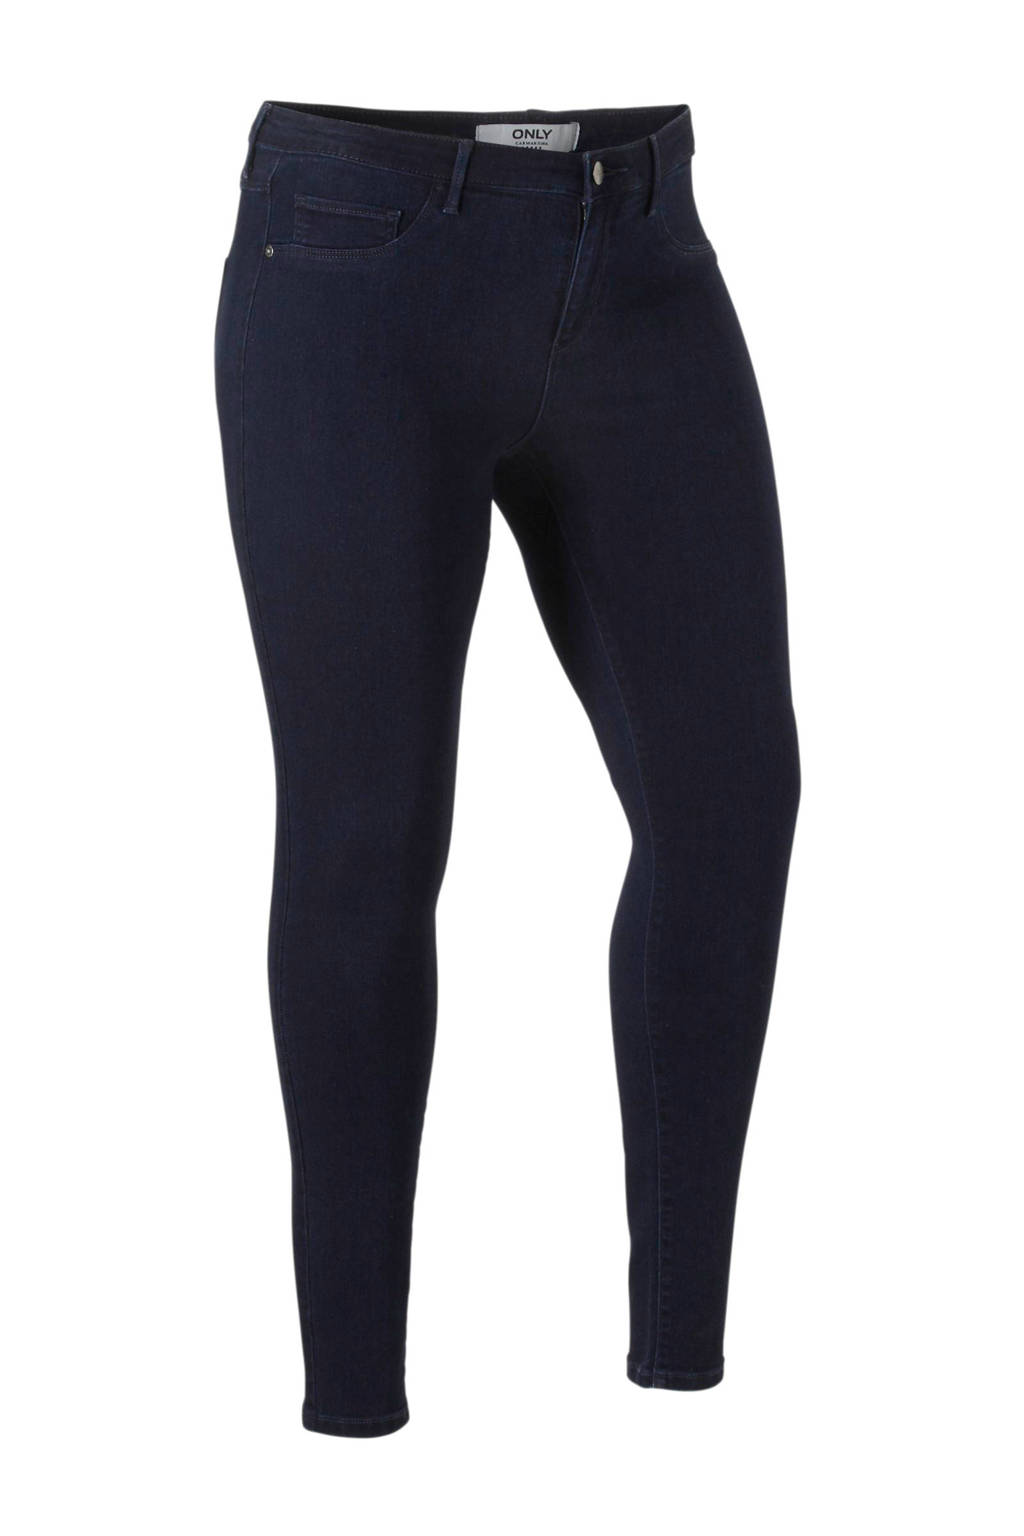 ONLY carmakoma skinny jeans, Donkerblauw